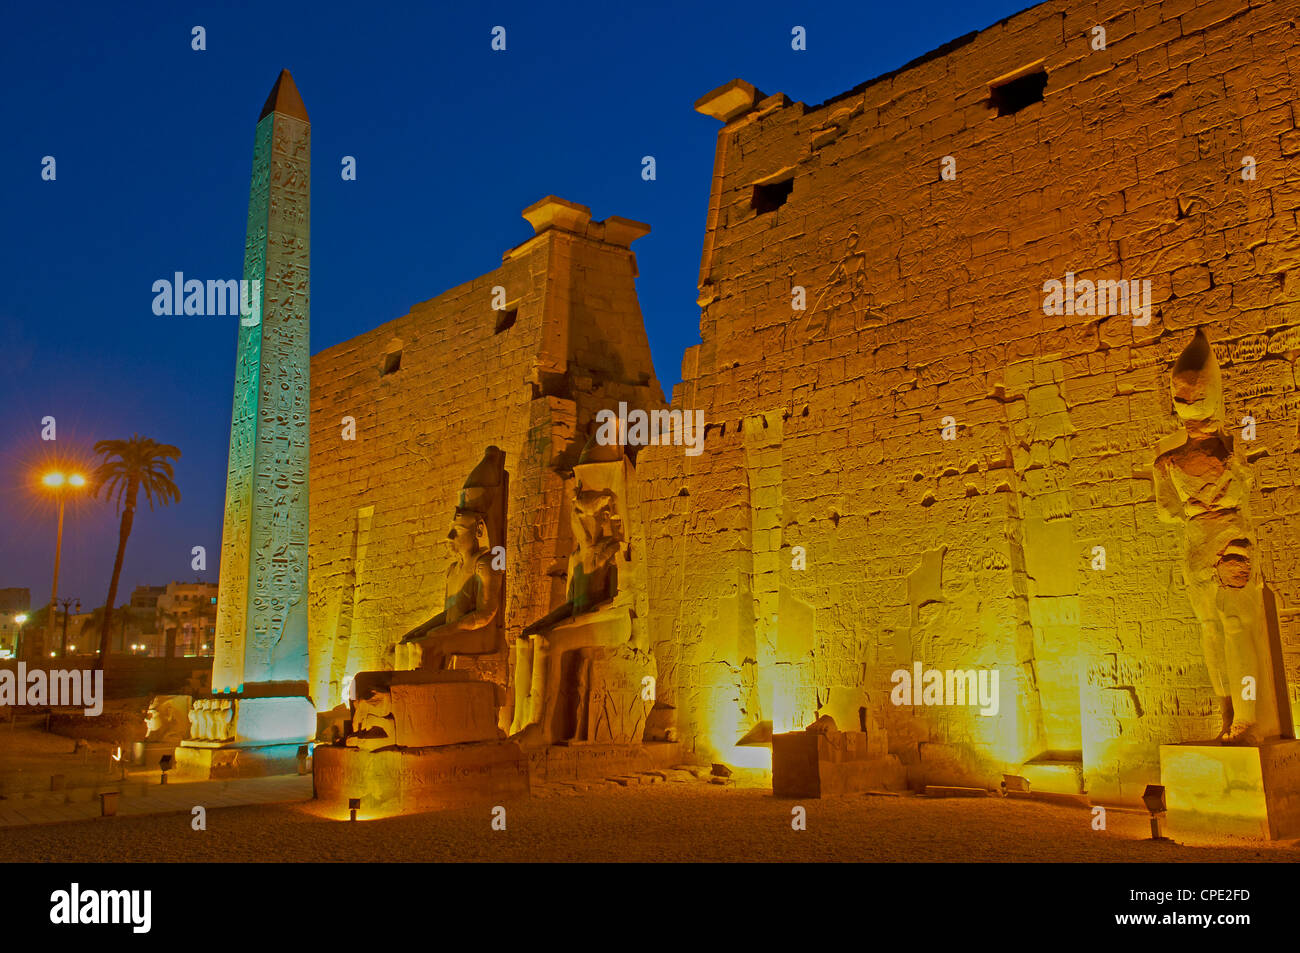 Obelisk of Ramesses II and pylons, Temple of Luxor, Thebes, UNESCO World Heritage Site, Egypt, North Africa, Africa - Stock Image